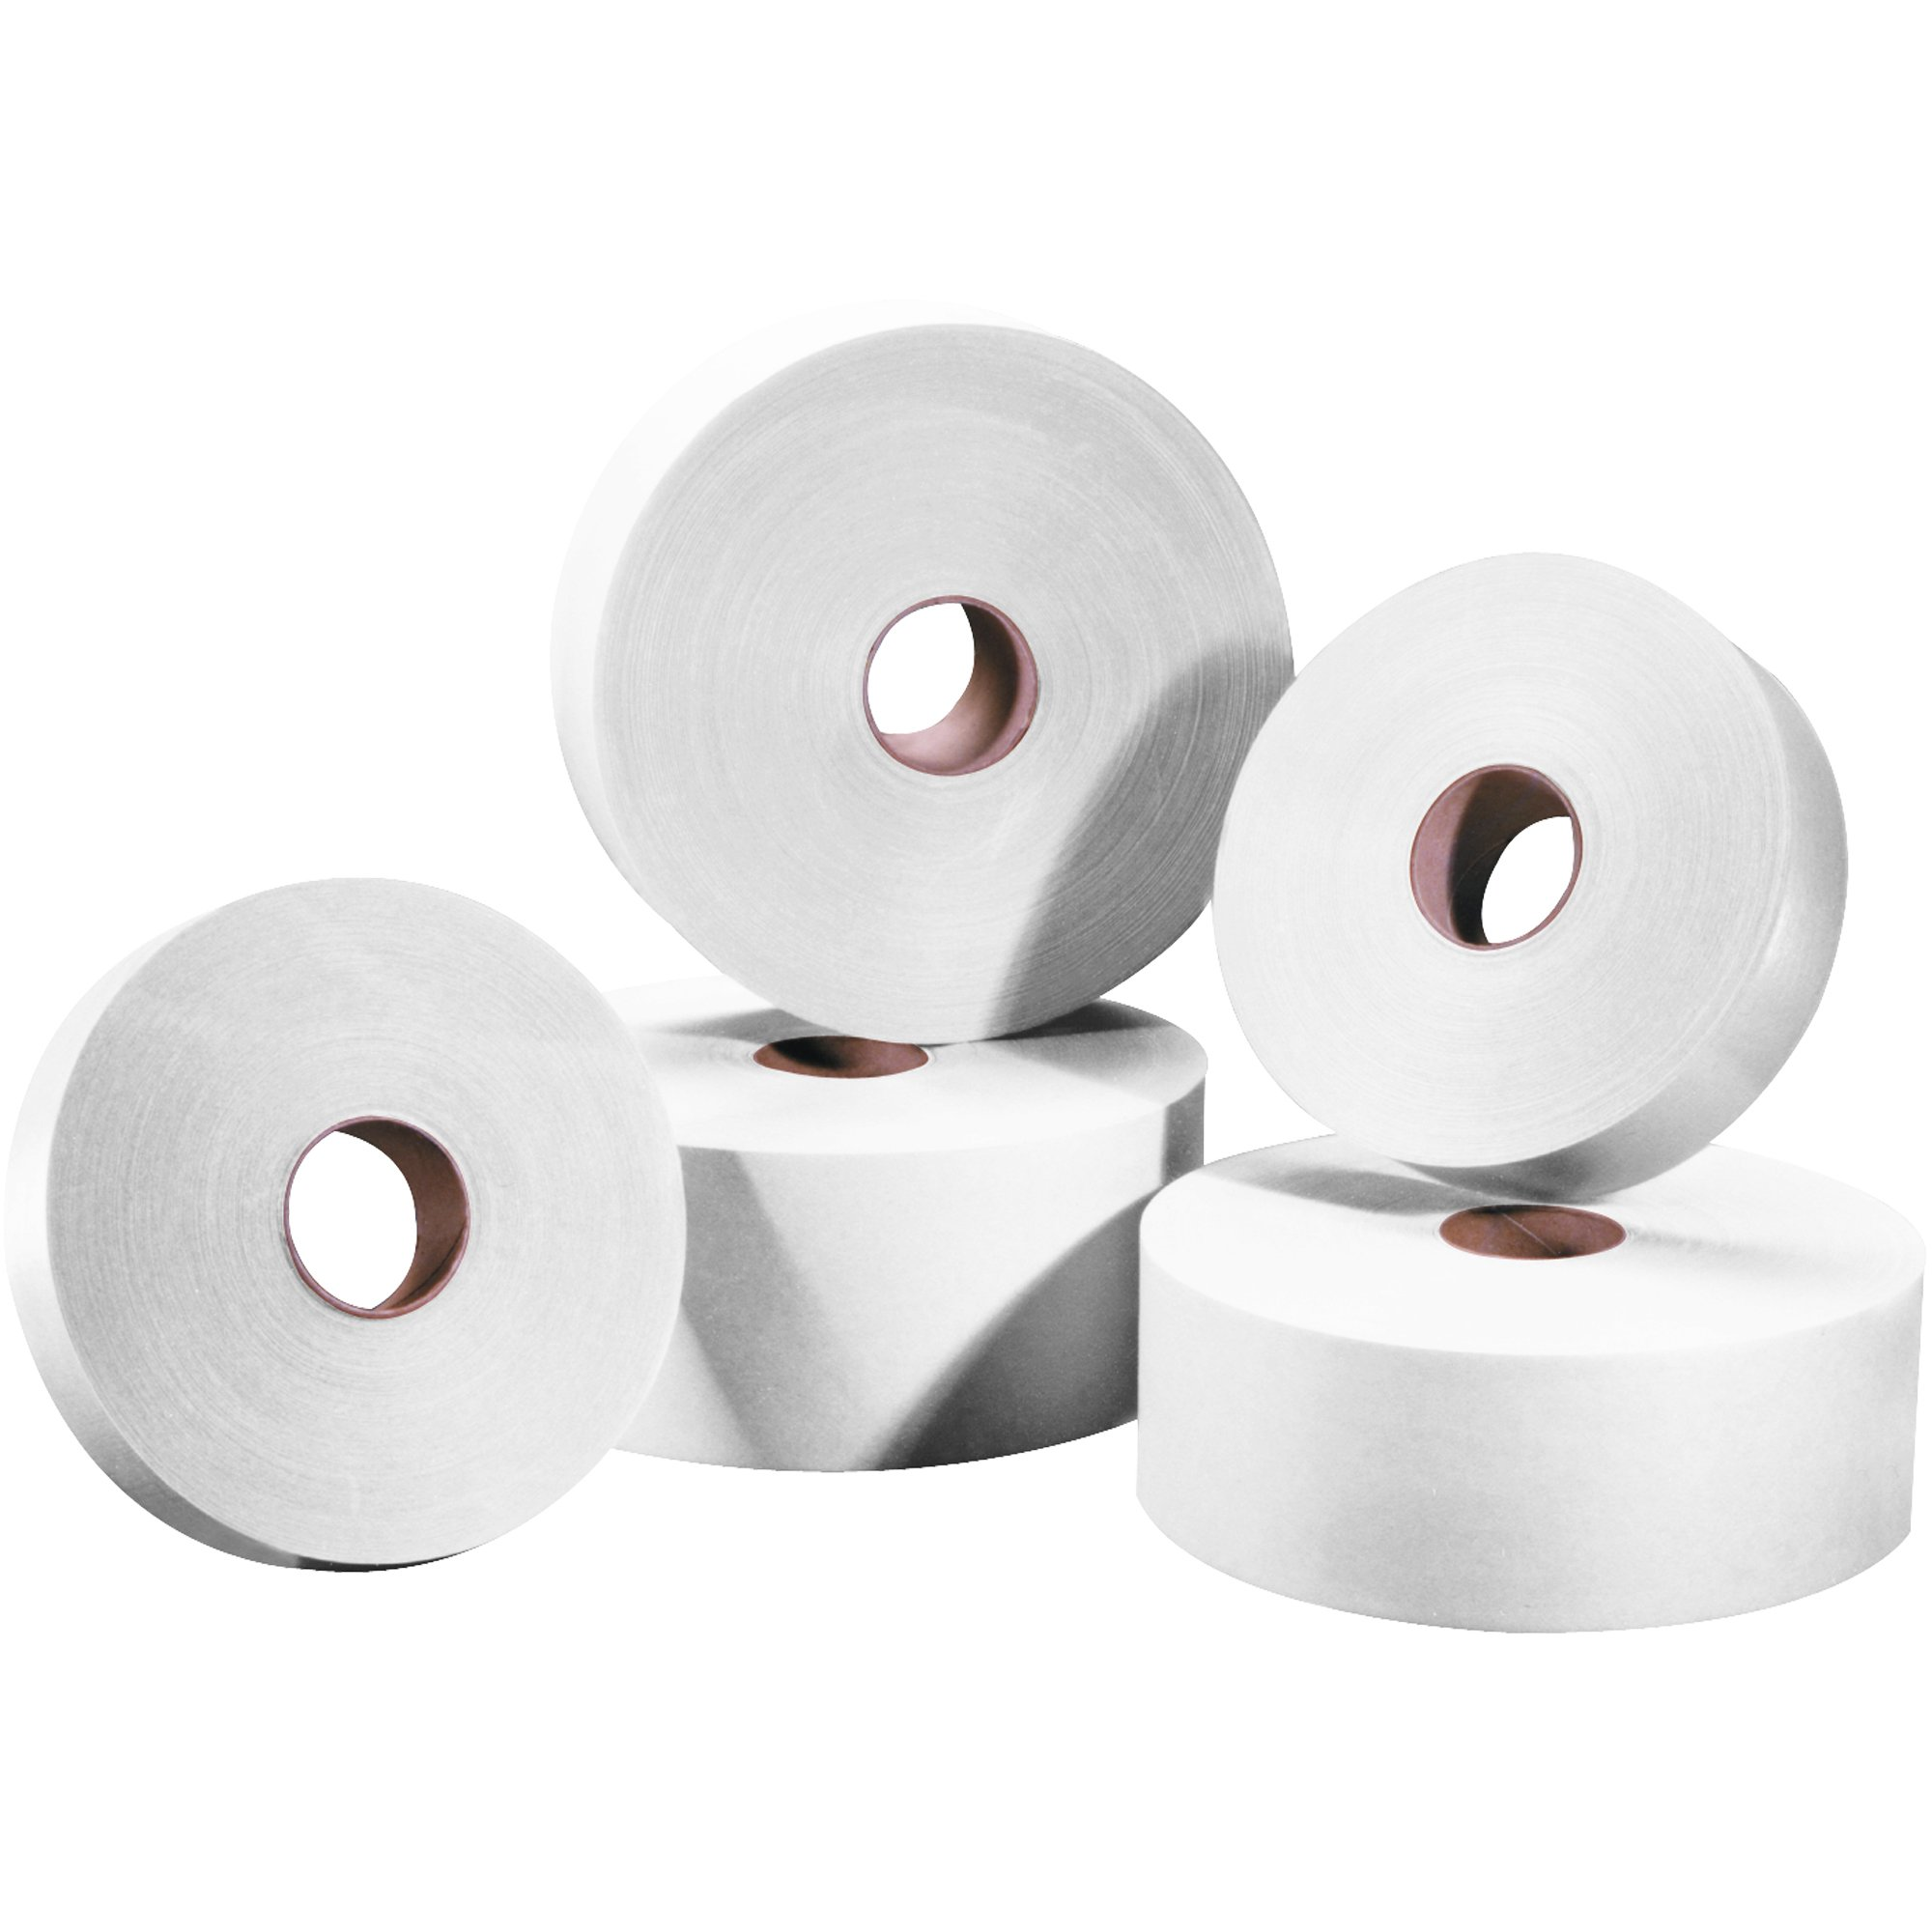 Tape Logic TLT15000W #5000 Non Reinforced Water Activated Tape, 1'' x 500', White (Pack of 30) by Tape Logic